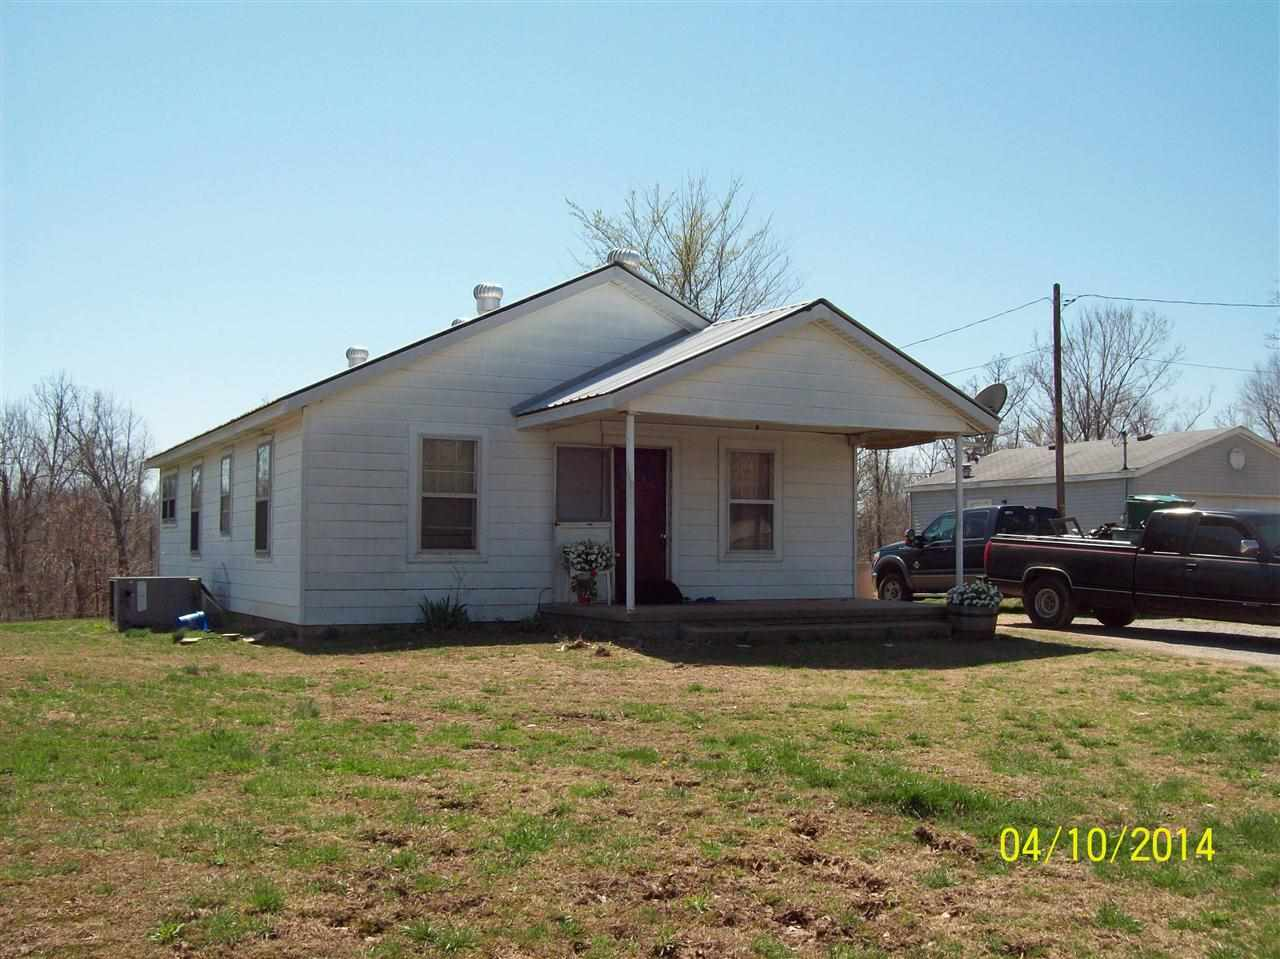 9355 Ky-70, Marion, KY 42064